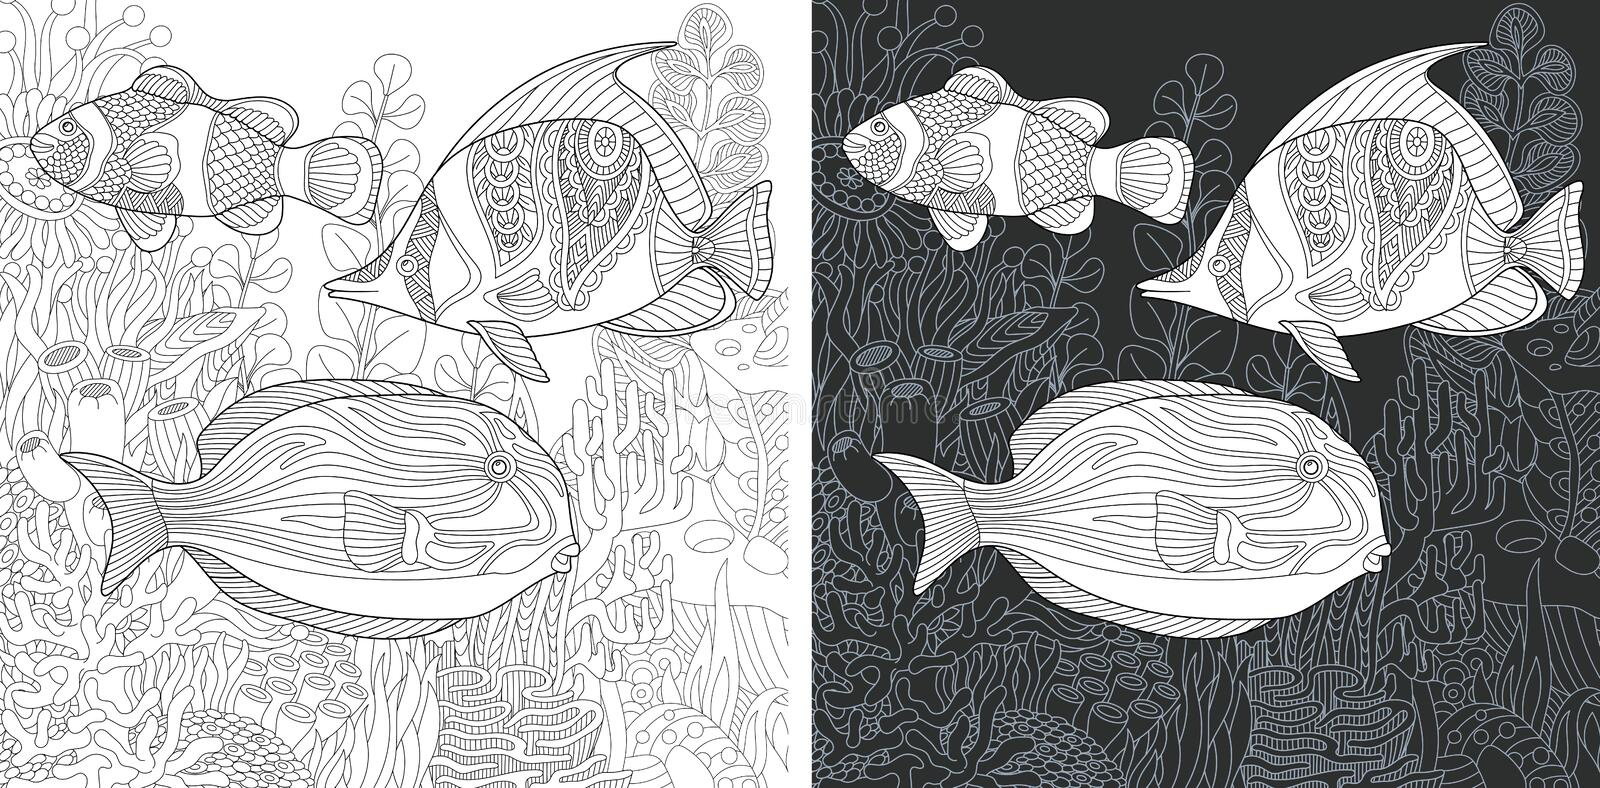 Coloring pages with Tropical Fishes royalty free stock photography